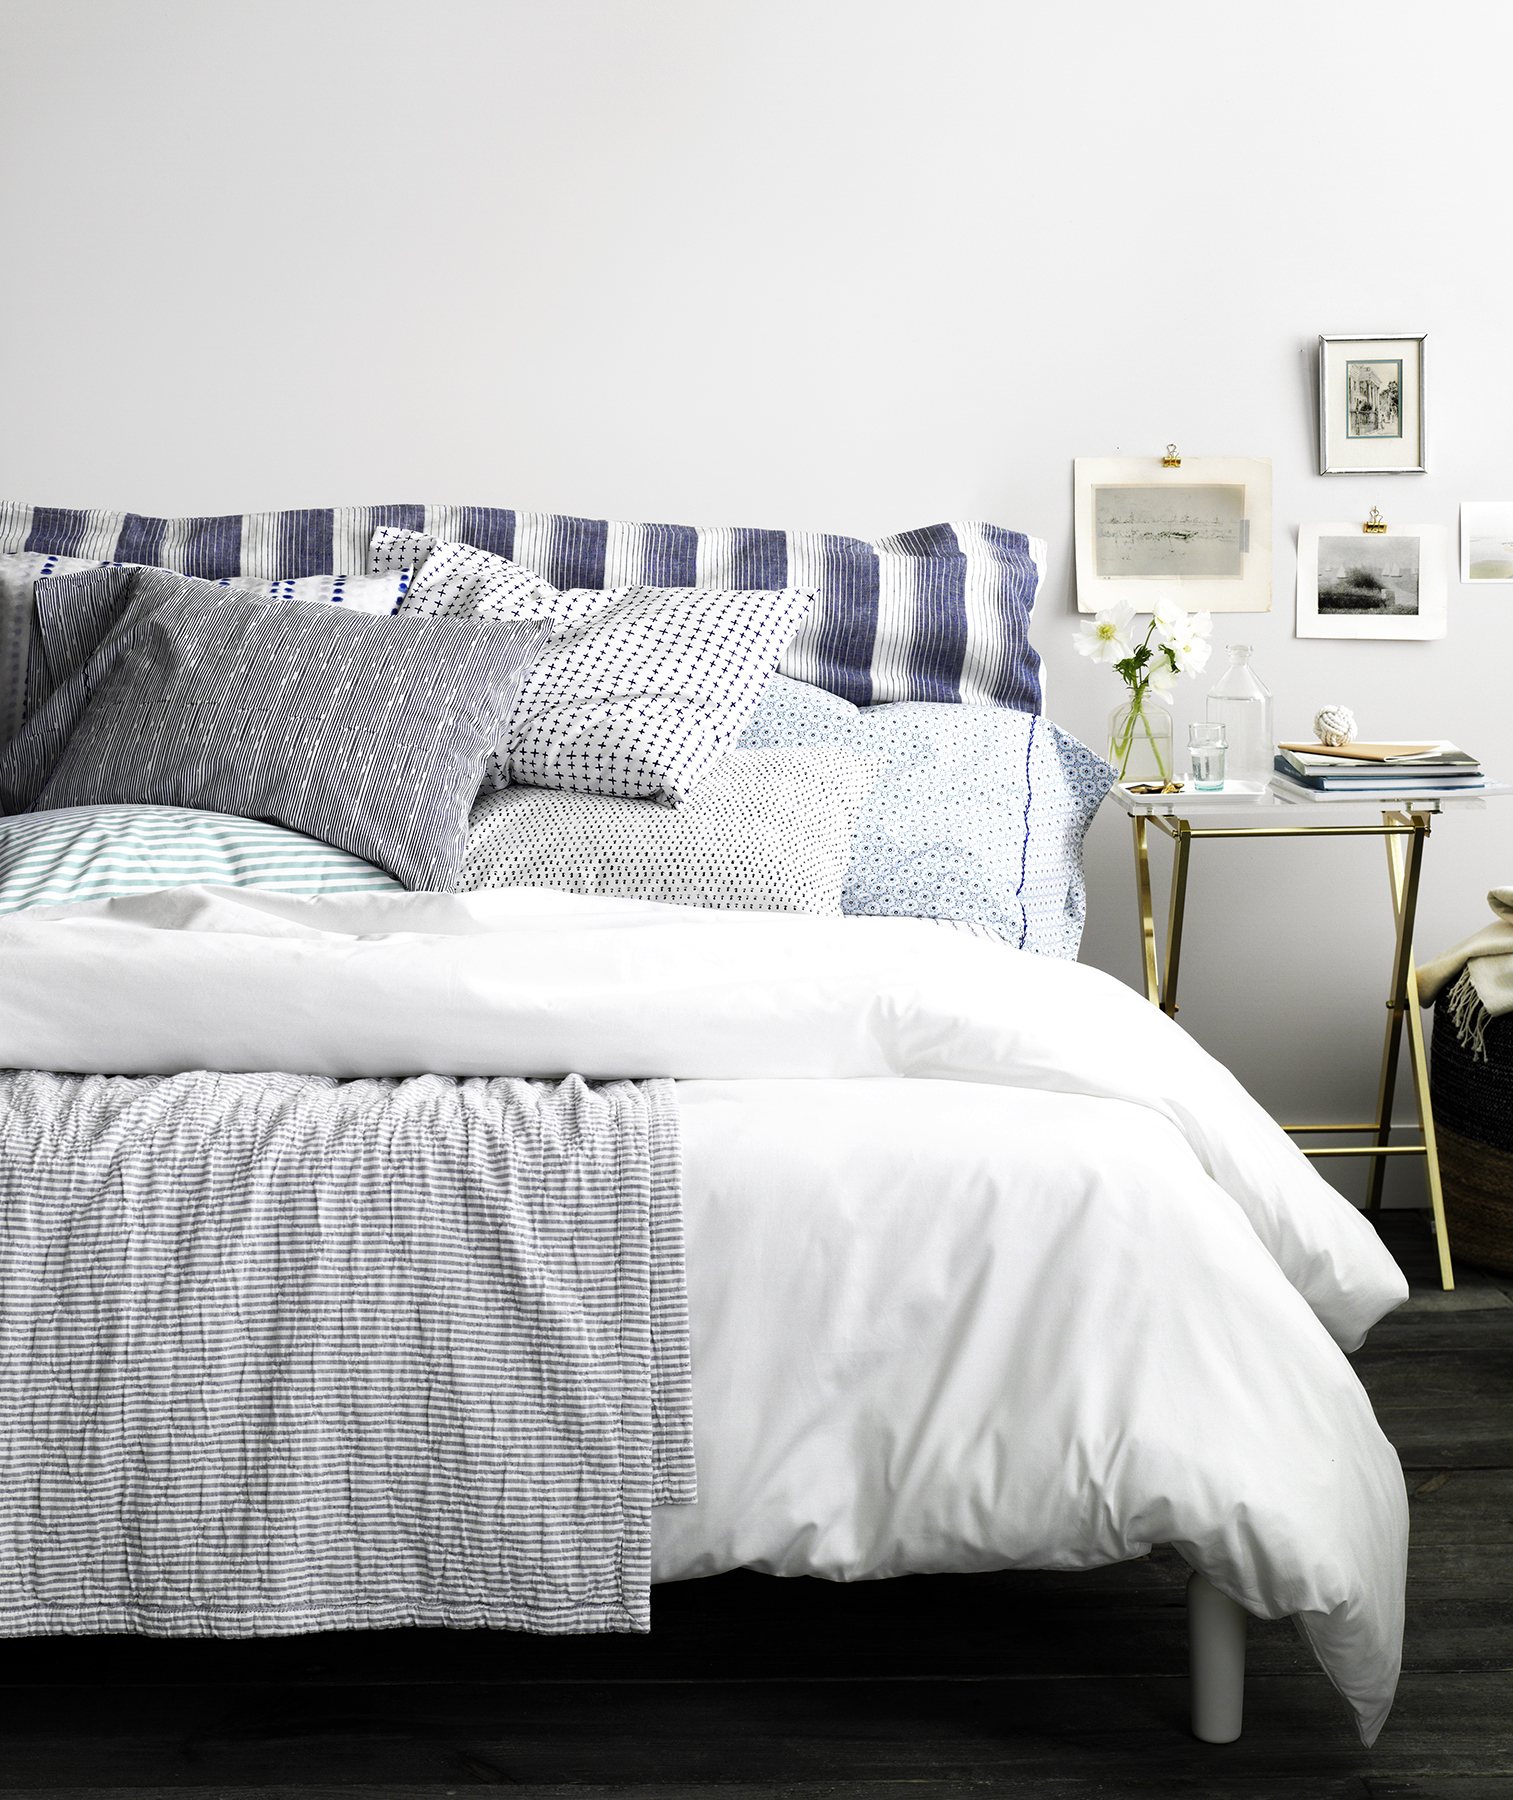 Bed with blue and white linens & Your Ultimate Guide to Making a Better Bed | Real Simple